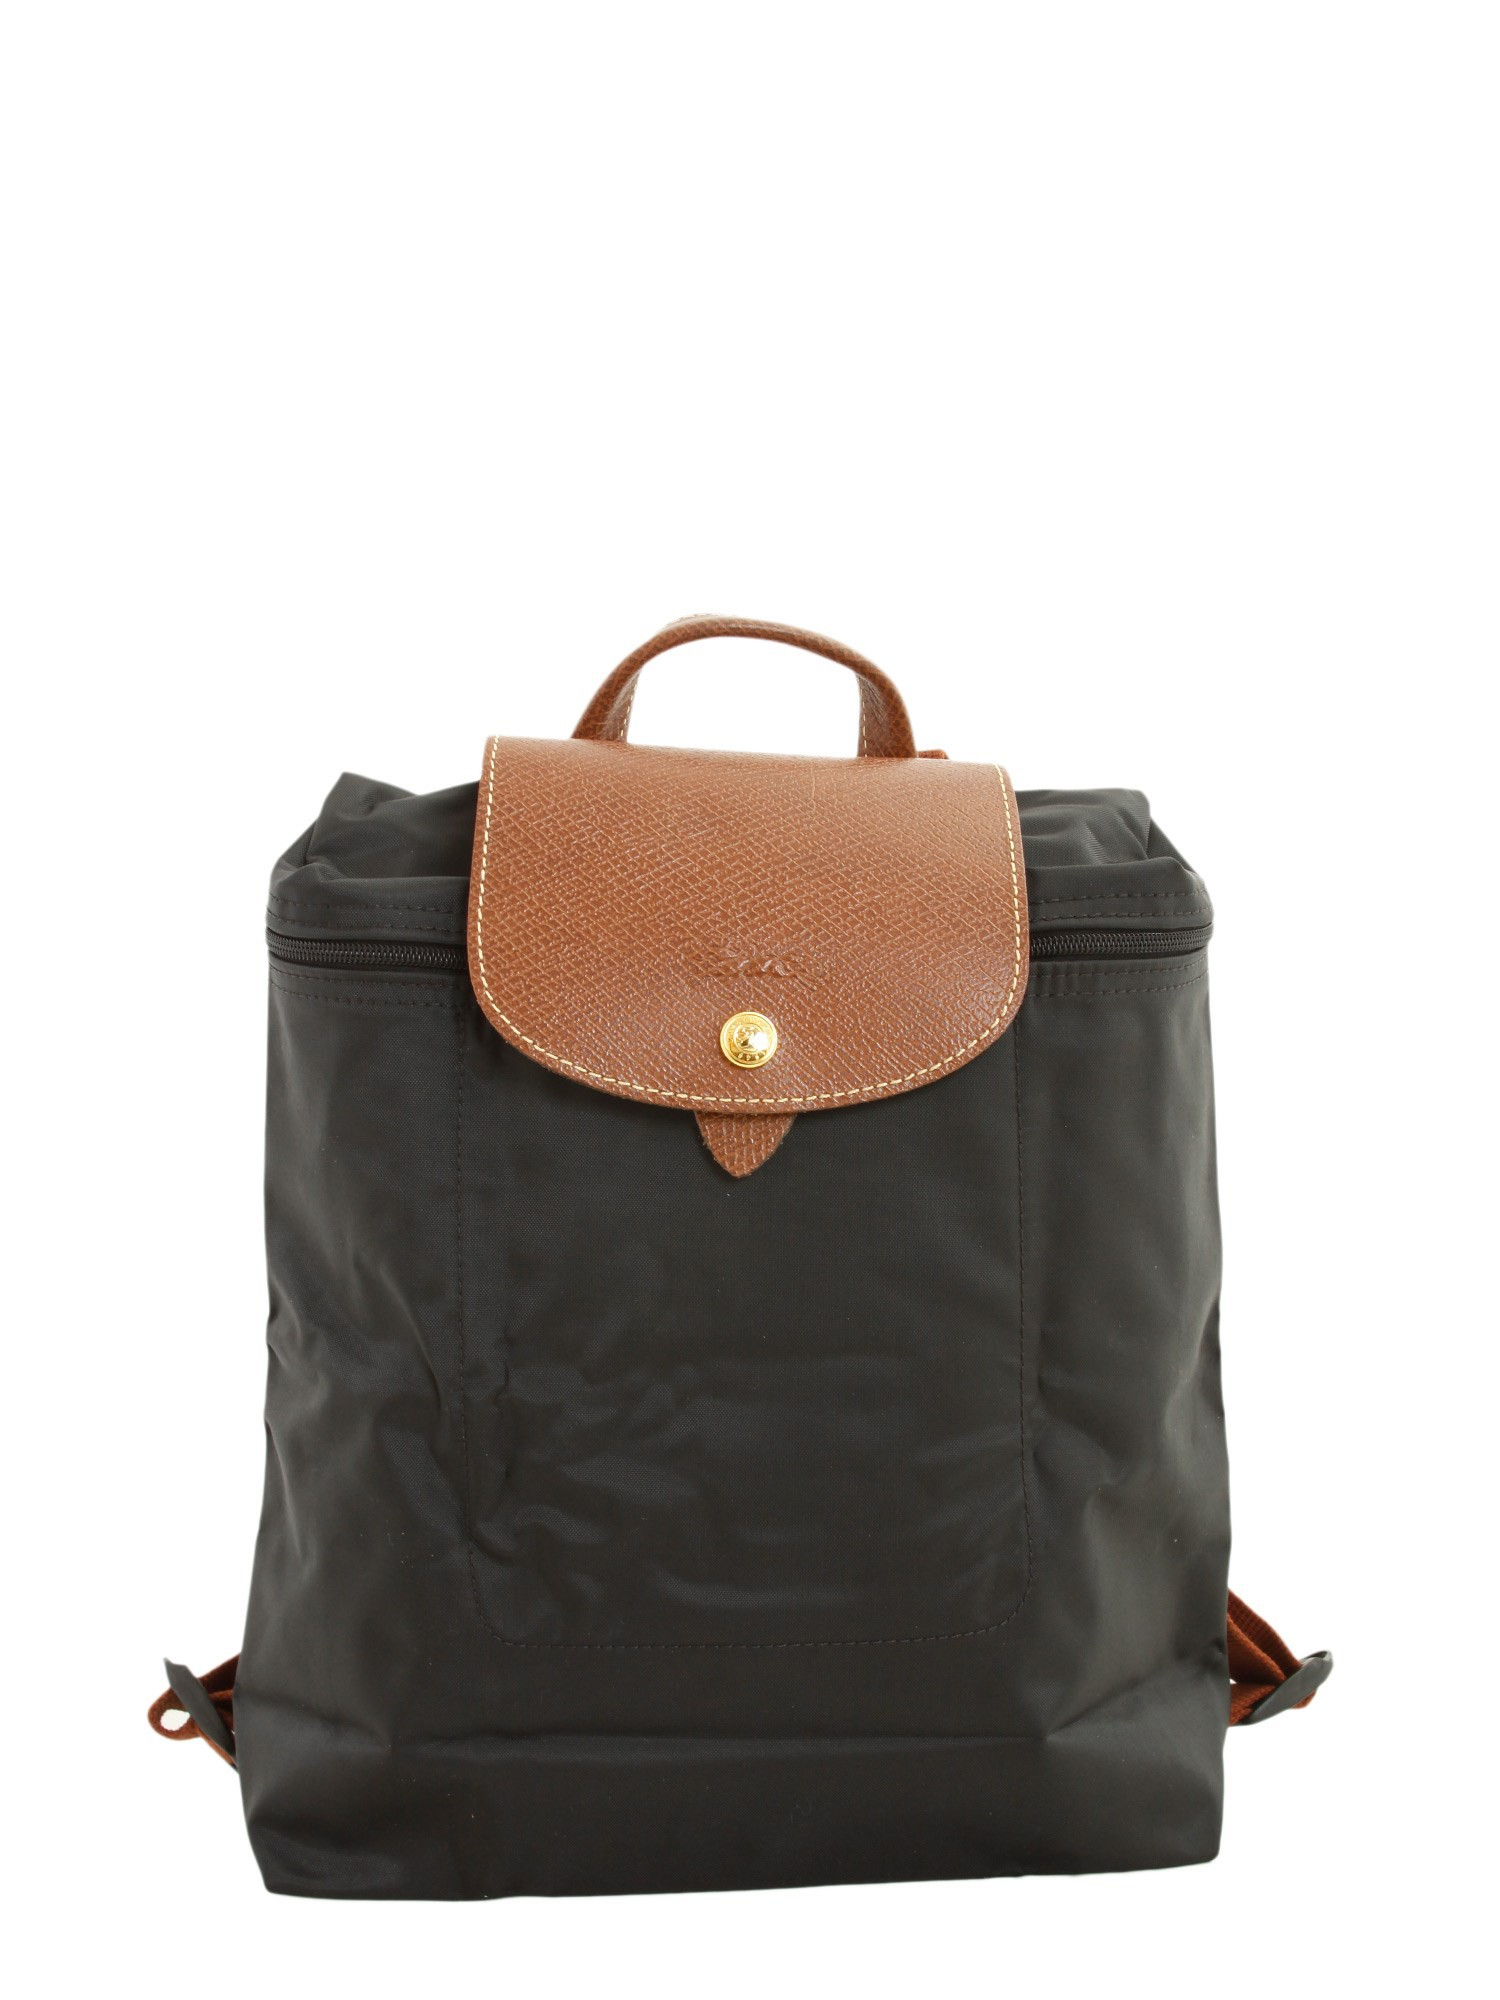 Longchamp Le Pliage Backpack In Gray Grigio Lyst